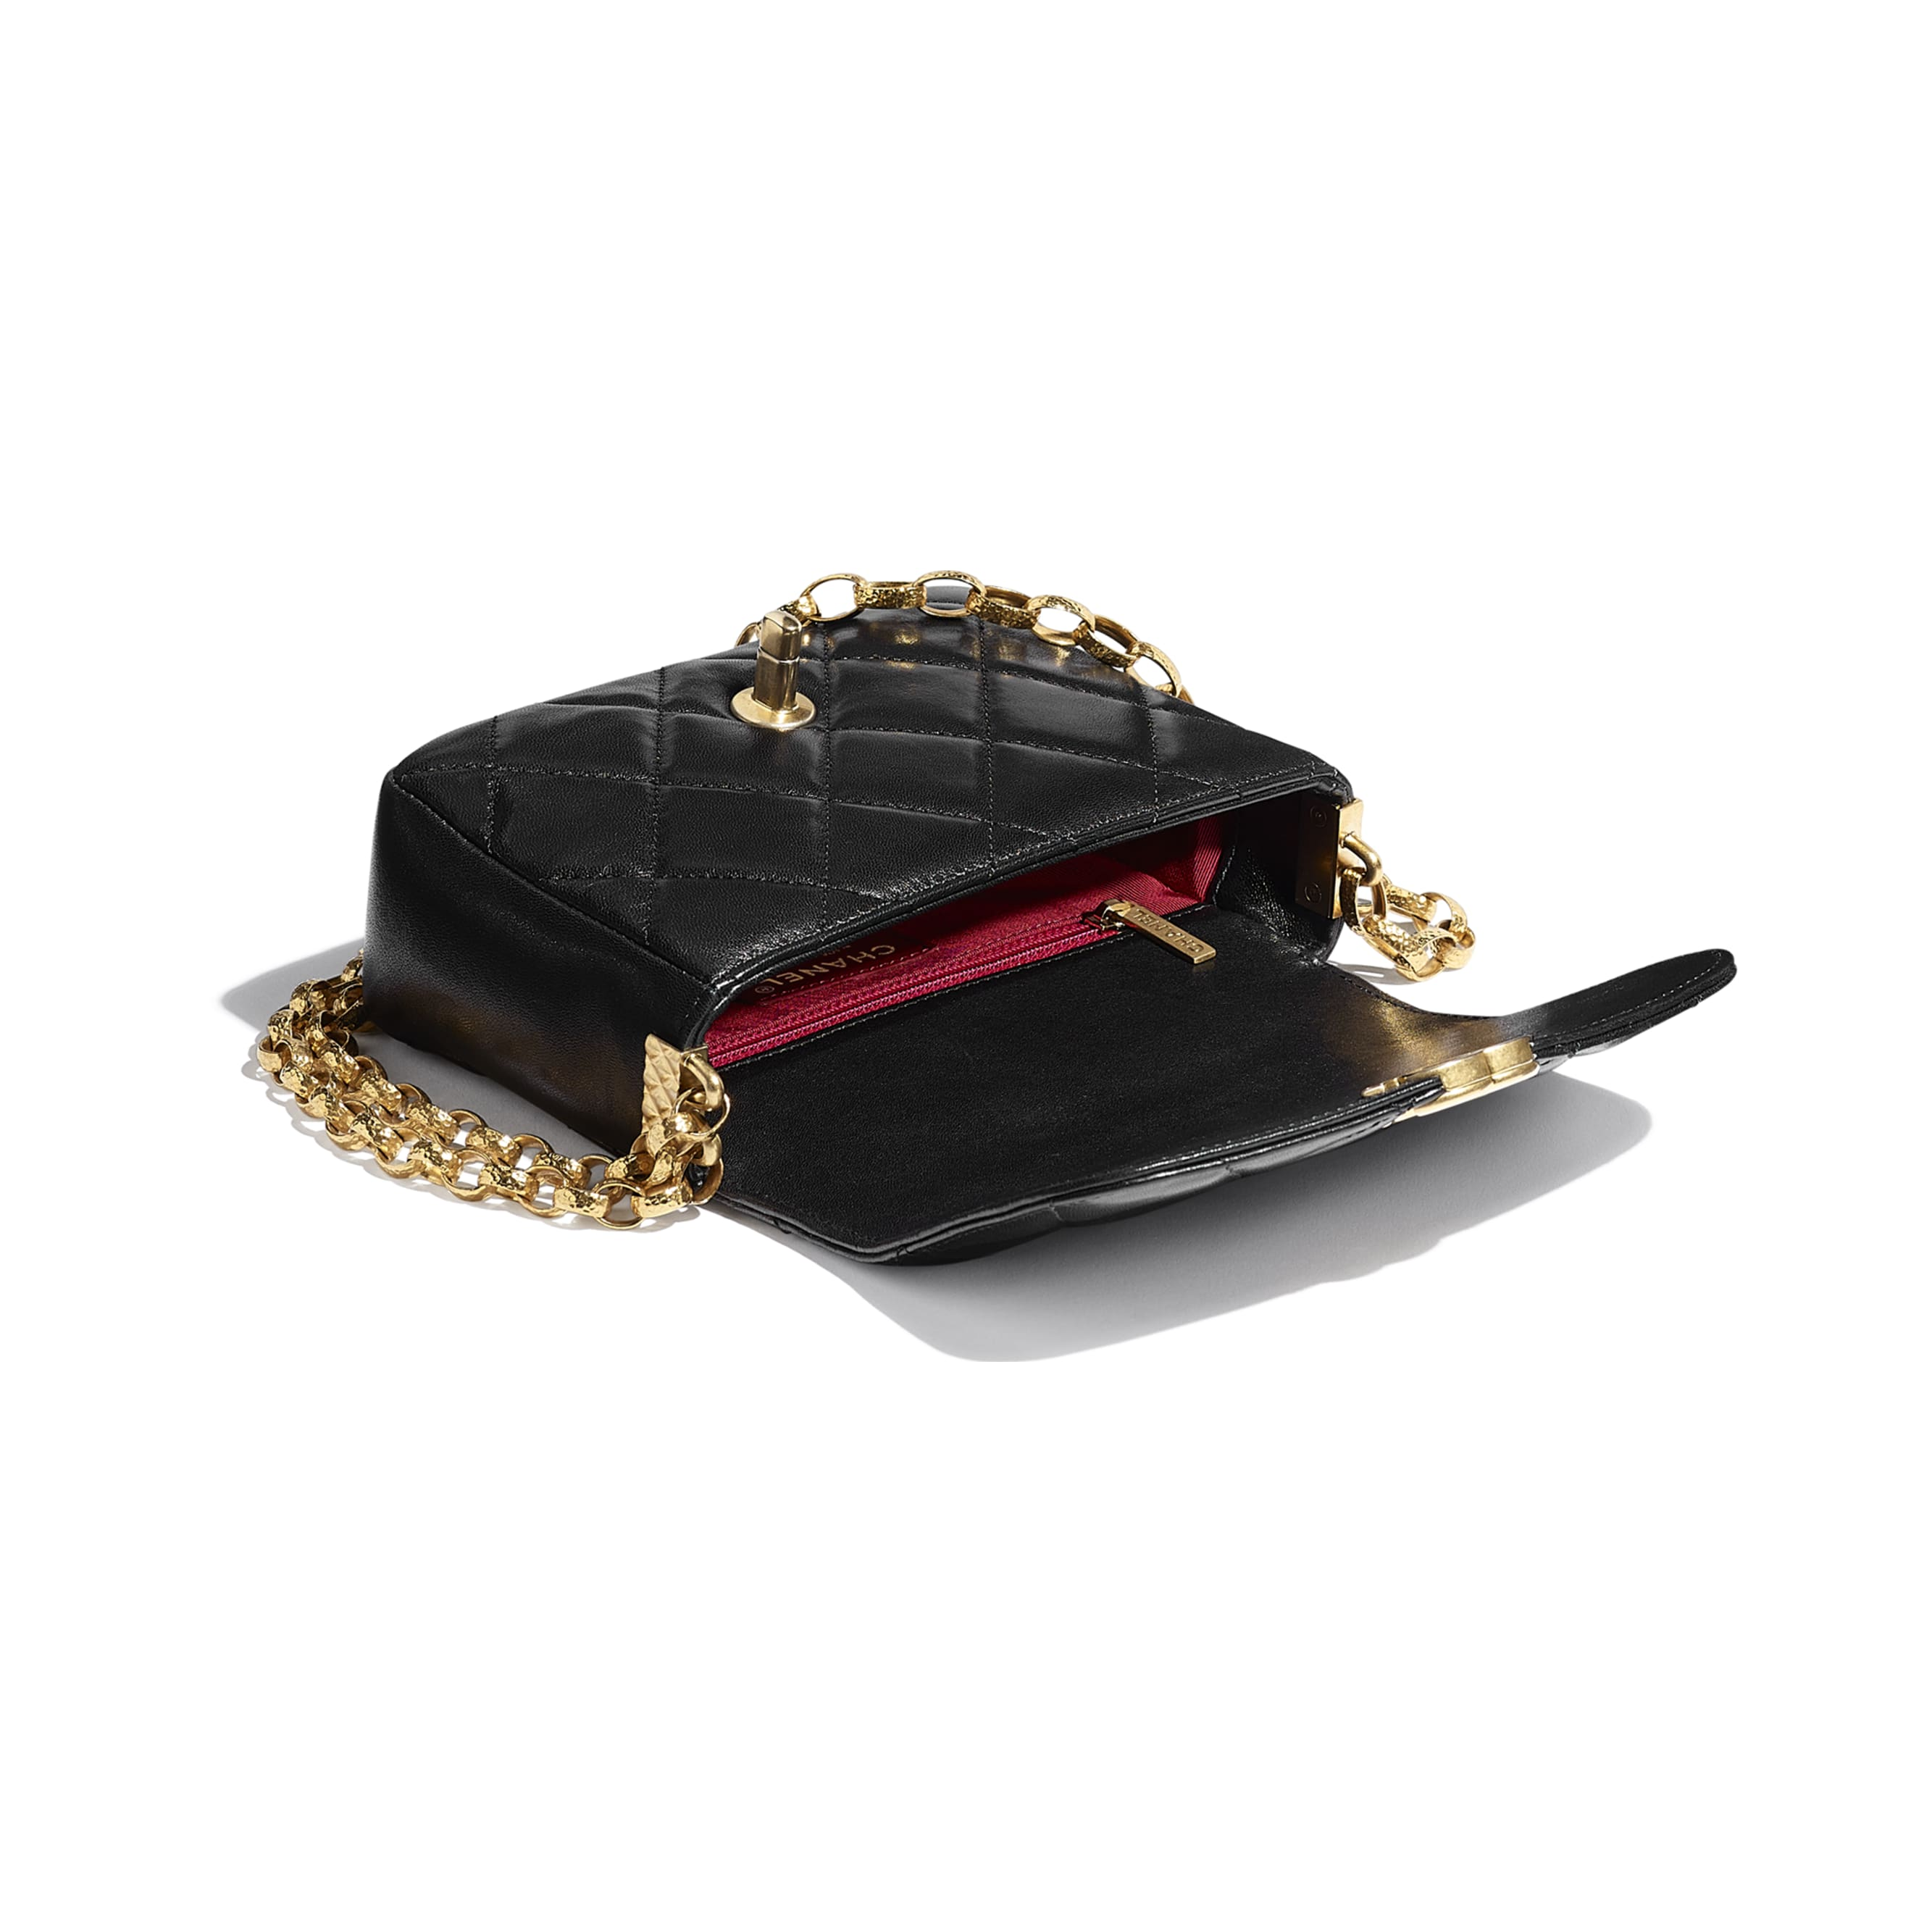 Small Flap Bag - Black - Lambskin & Gold-Tone Metal - CHANEL - Other view - see standard sized version